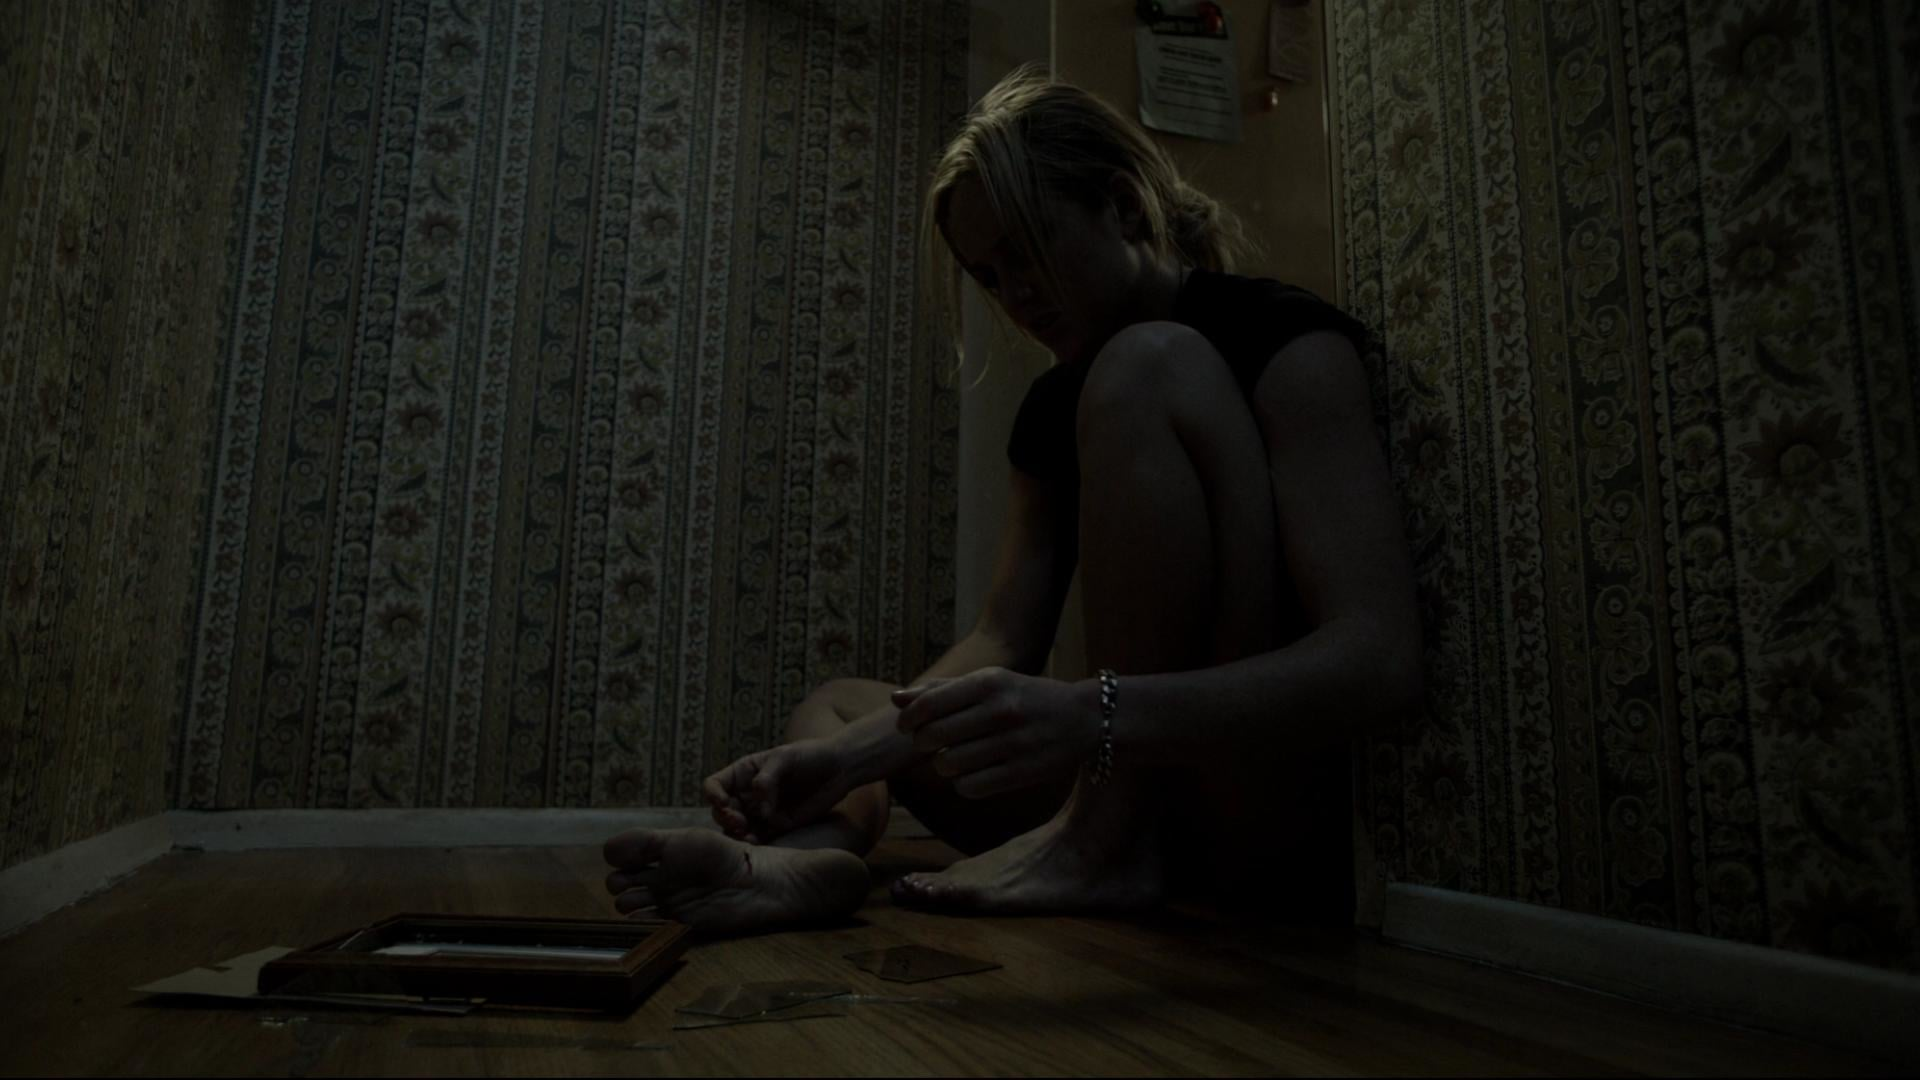 Annie (Caity Lotz) picks up the pieces of a broken picture in The Pact